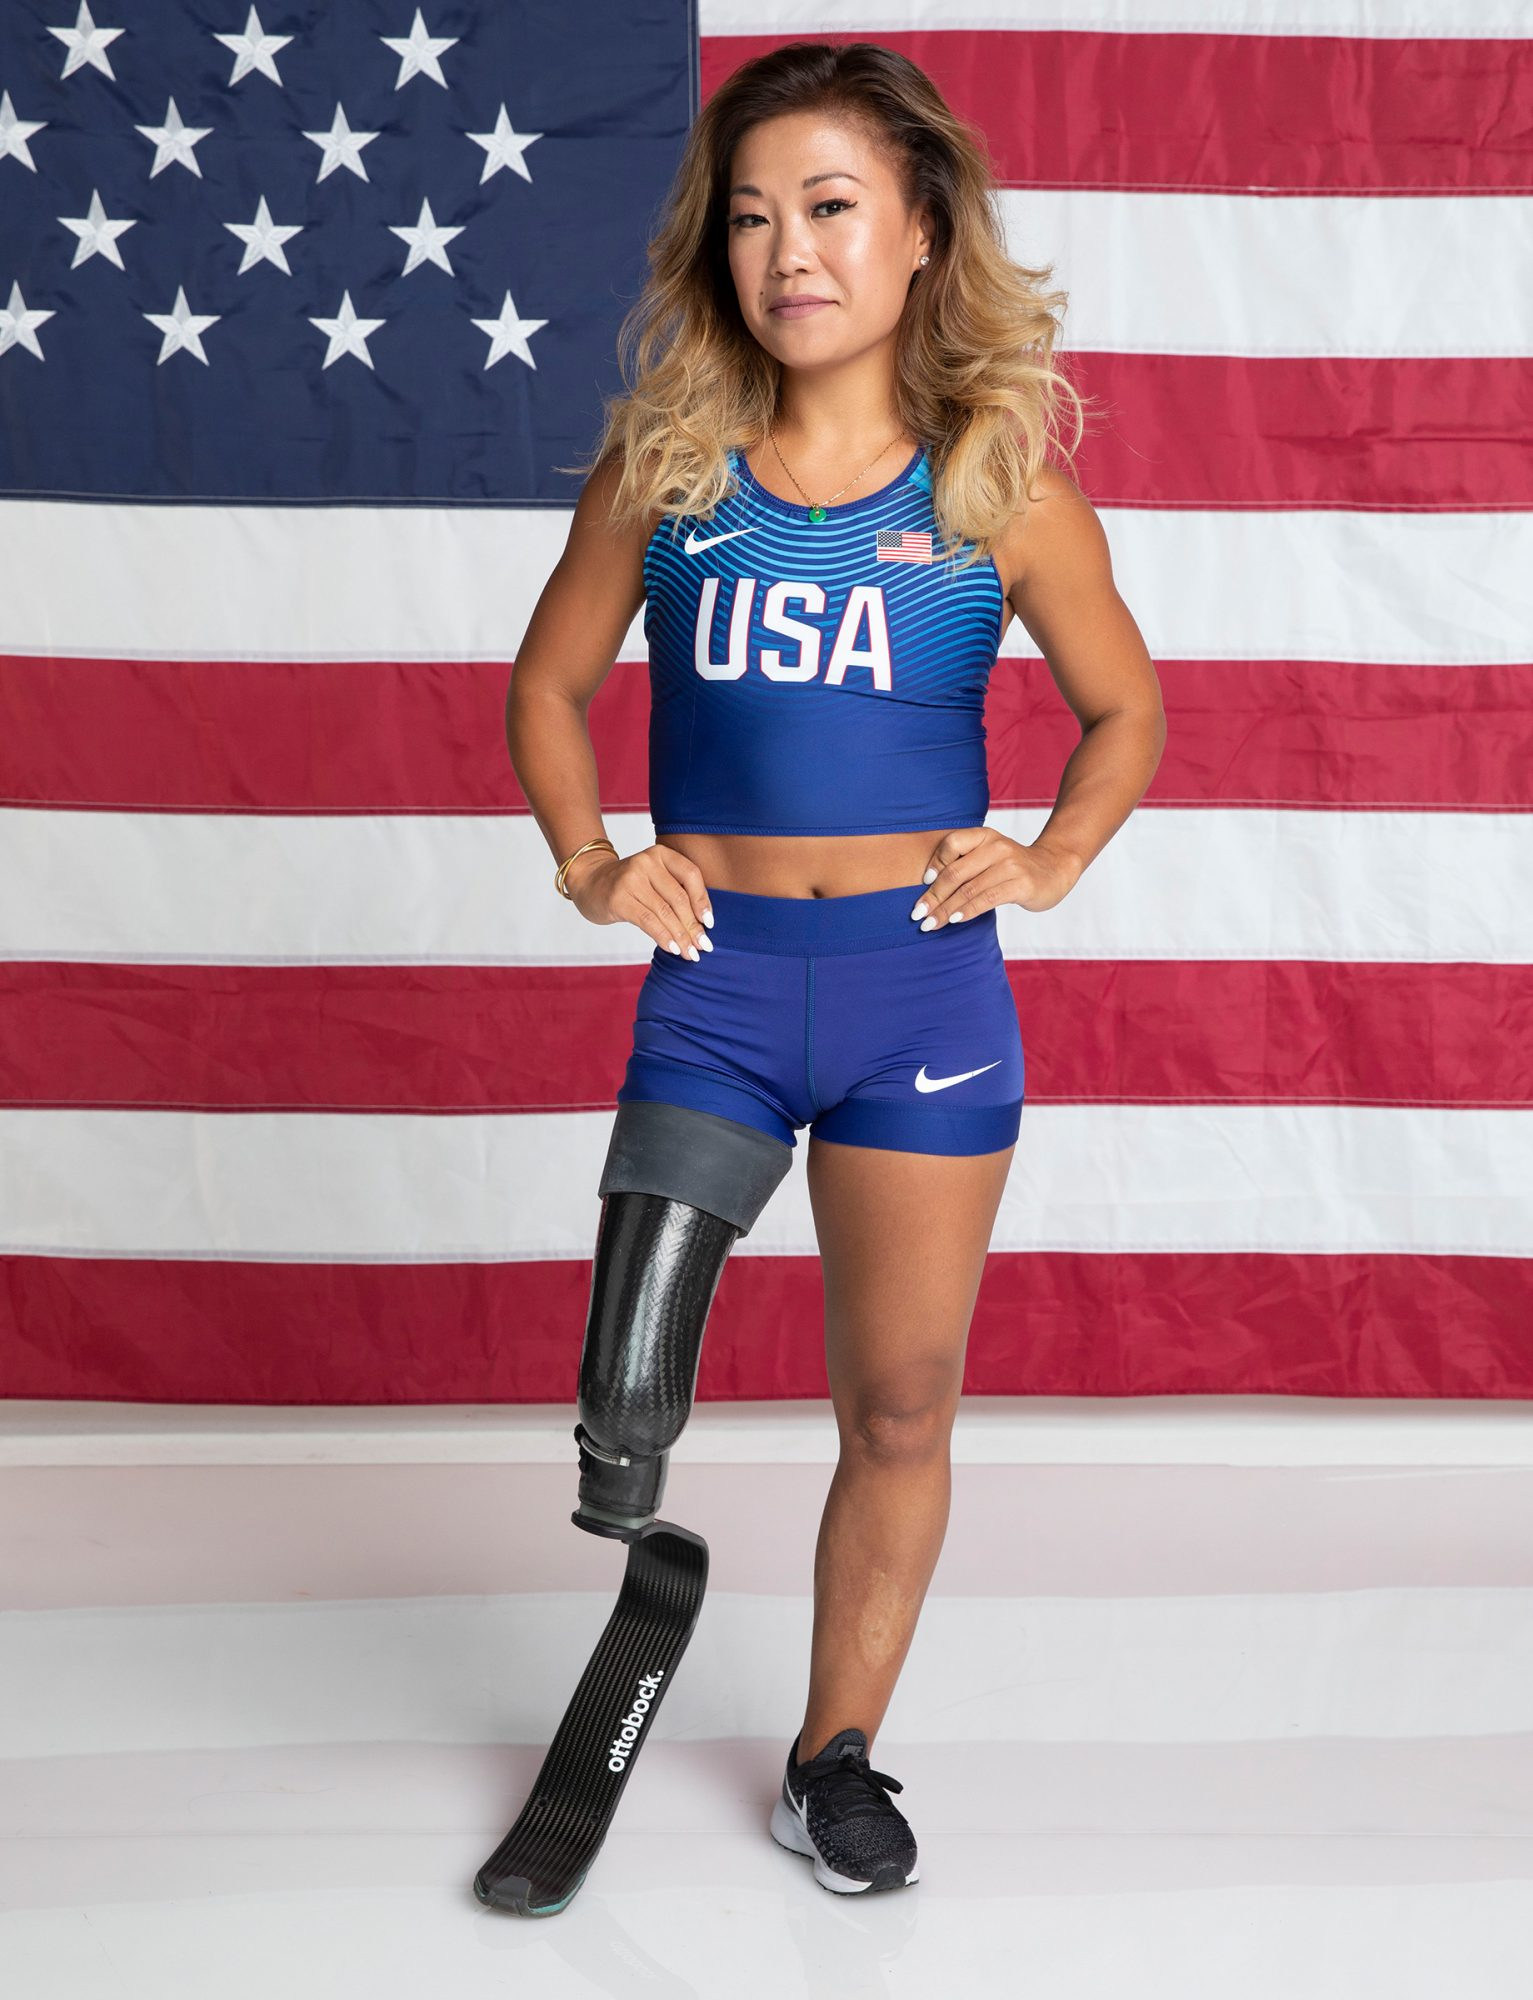 Scout Bassett Paralympians to Follow at This Summer's Games in Tokyo